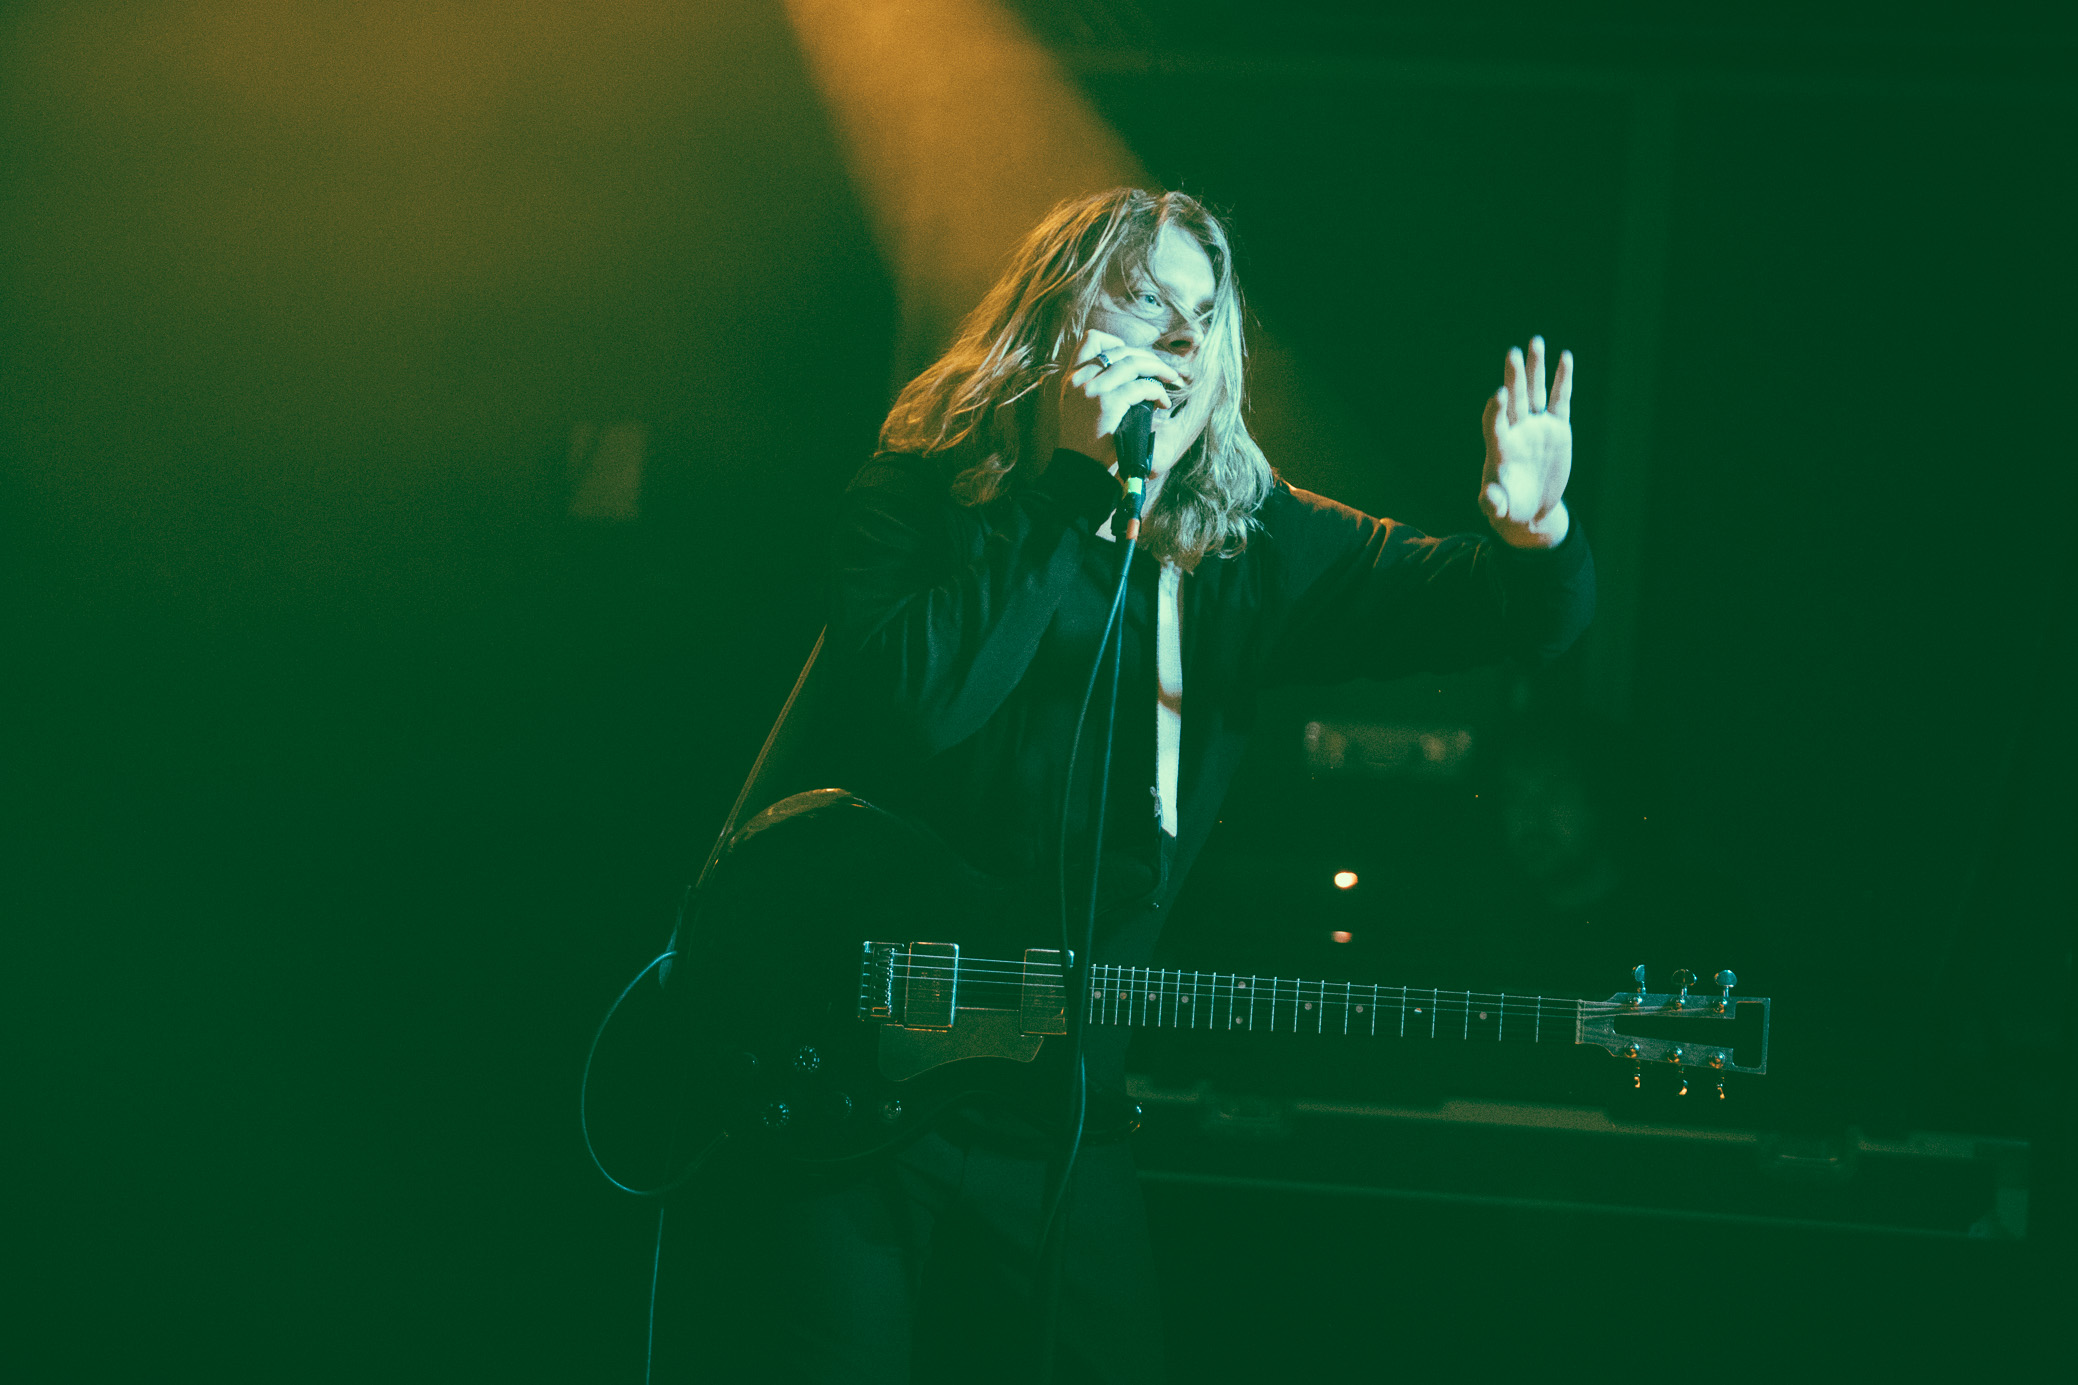 Ty Segall performs in concert at Saturn Birmingham in Birmingham, Alabama on April 20th, 2018. (Photo by David A. Smith/DSmithScenes)